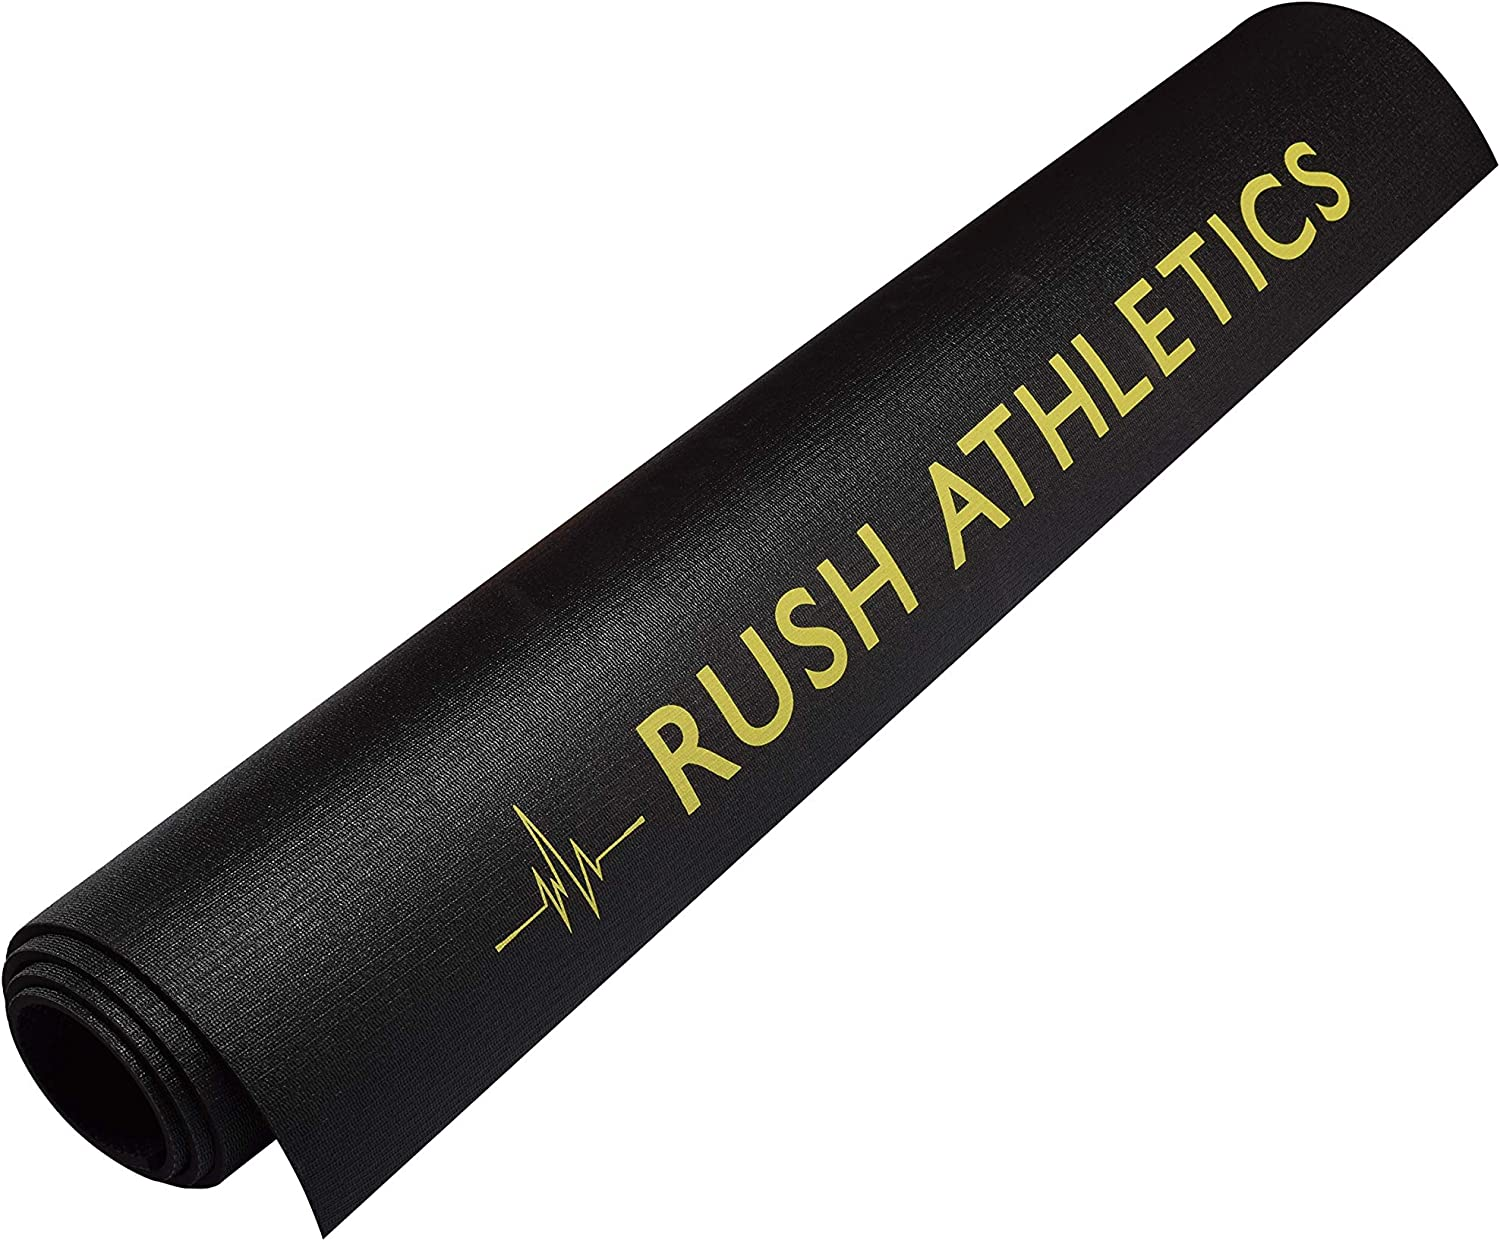 MMA Mats Plyo RUSH ATHLETICS X-Large Premium Jump Rope Fitness Mat 183cm Long x 122cm Wide x 8mm Thick Cardio High Density Non-Slip Workout Mats for Home Gym Flooring 6ft x 4ft 8mm Thick